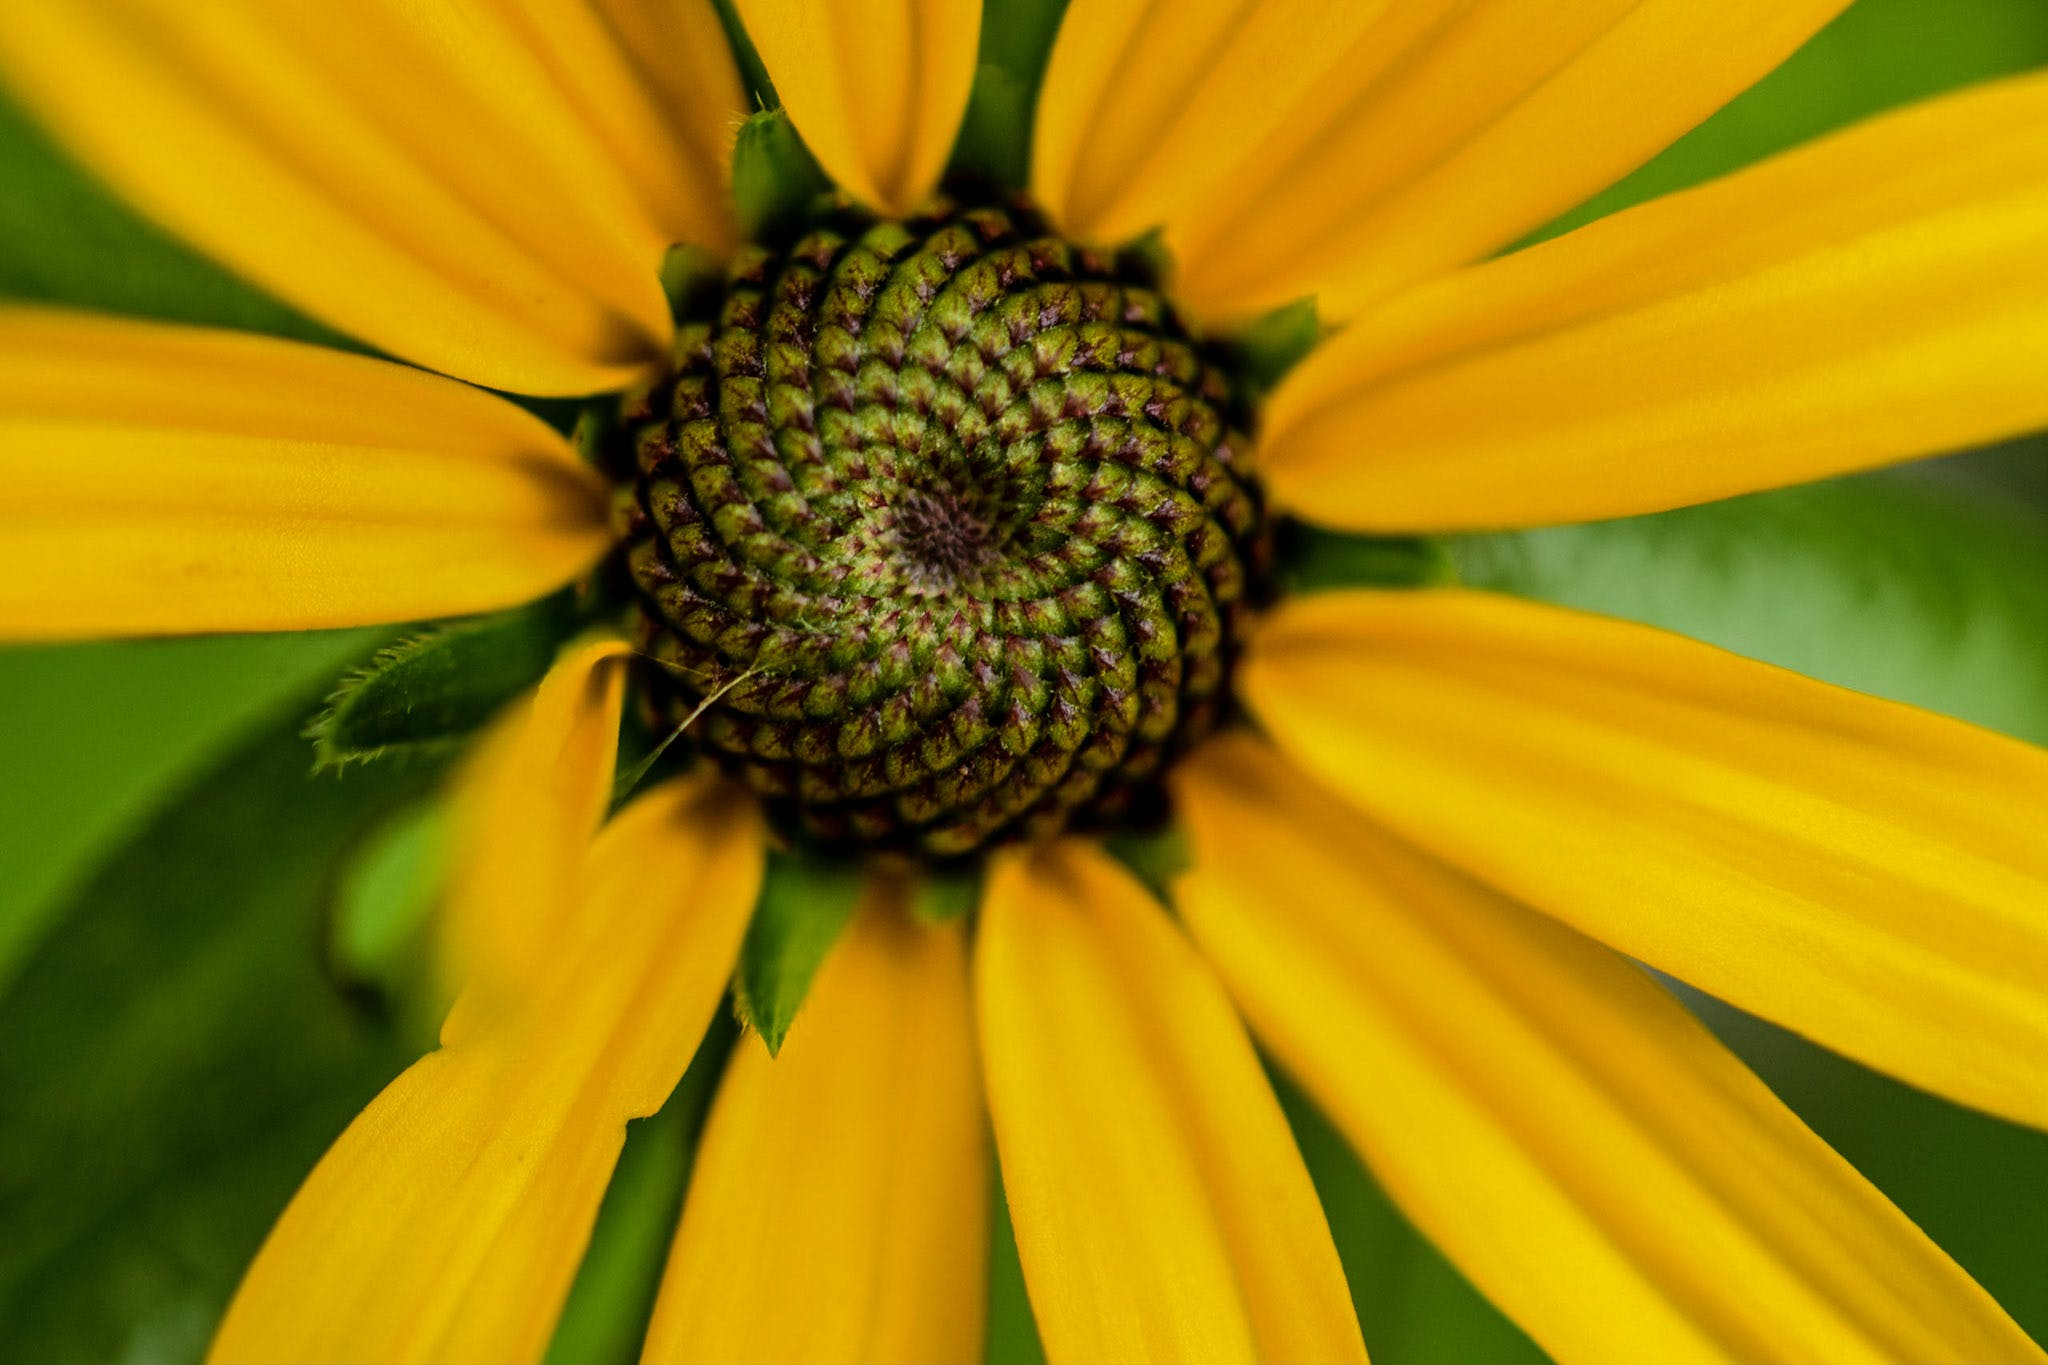 Close-up Photography of Yellow Daisy Flower